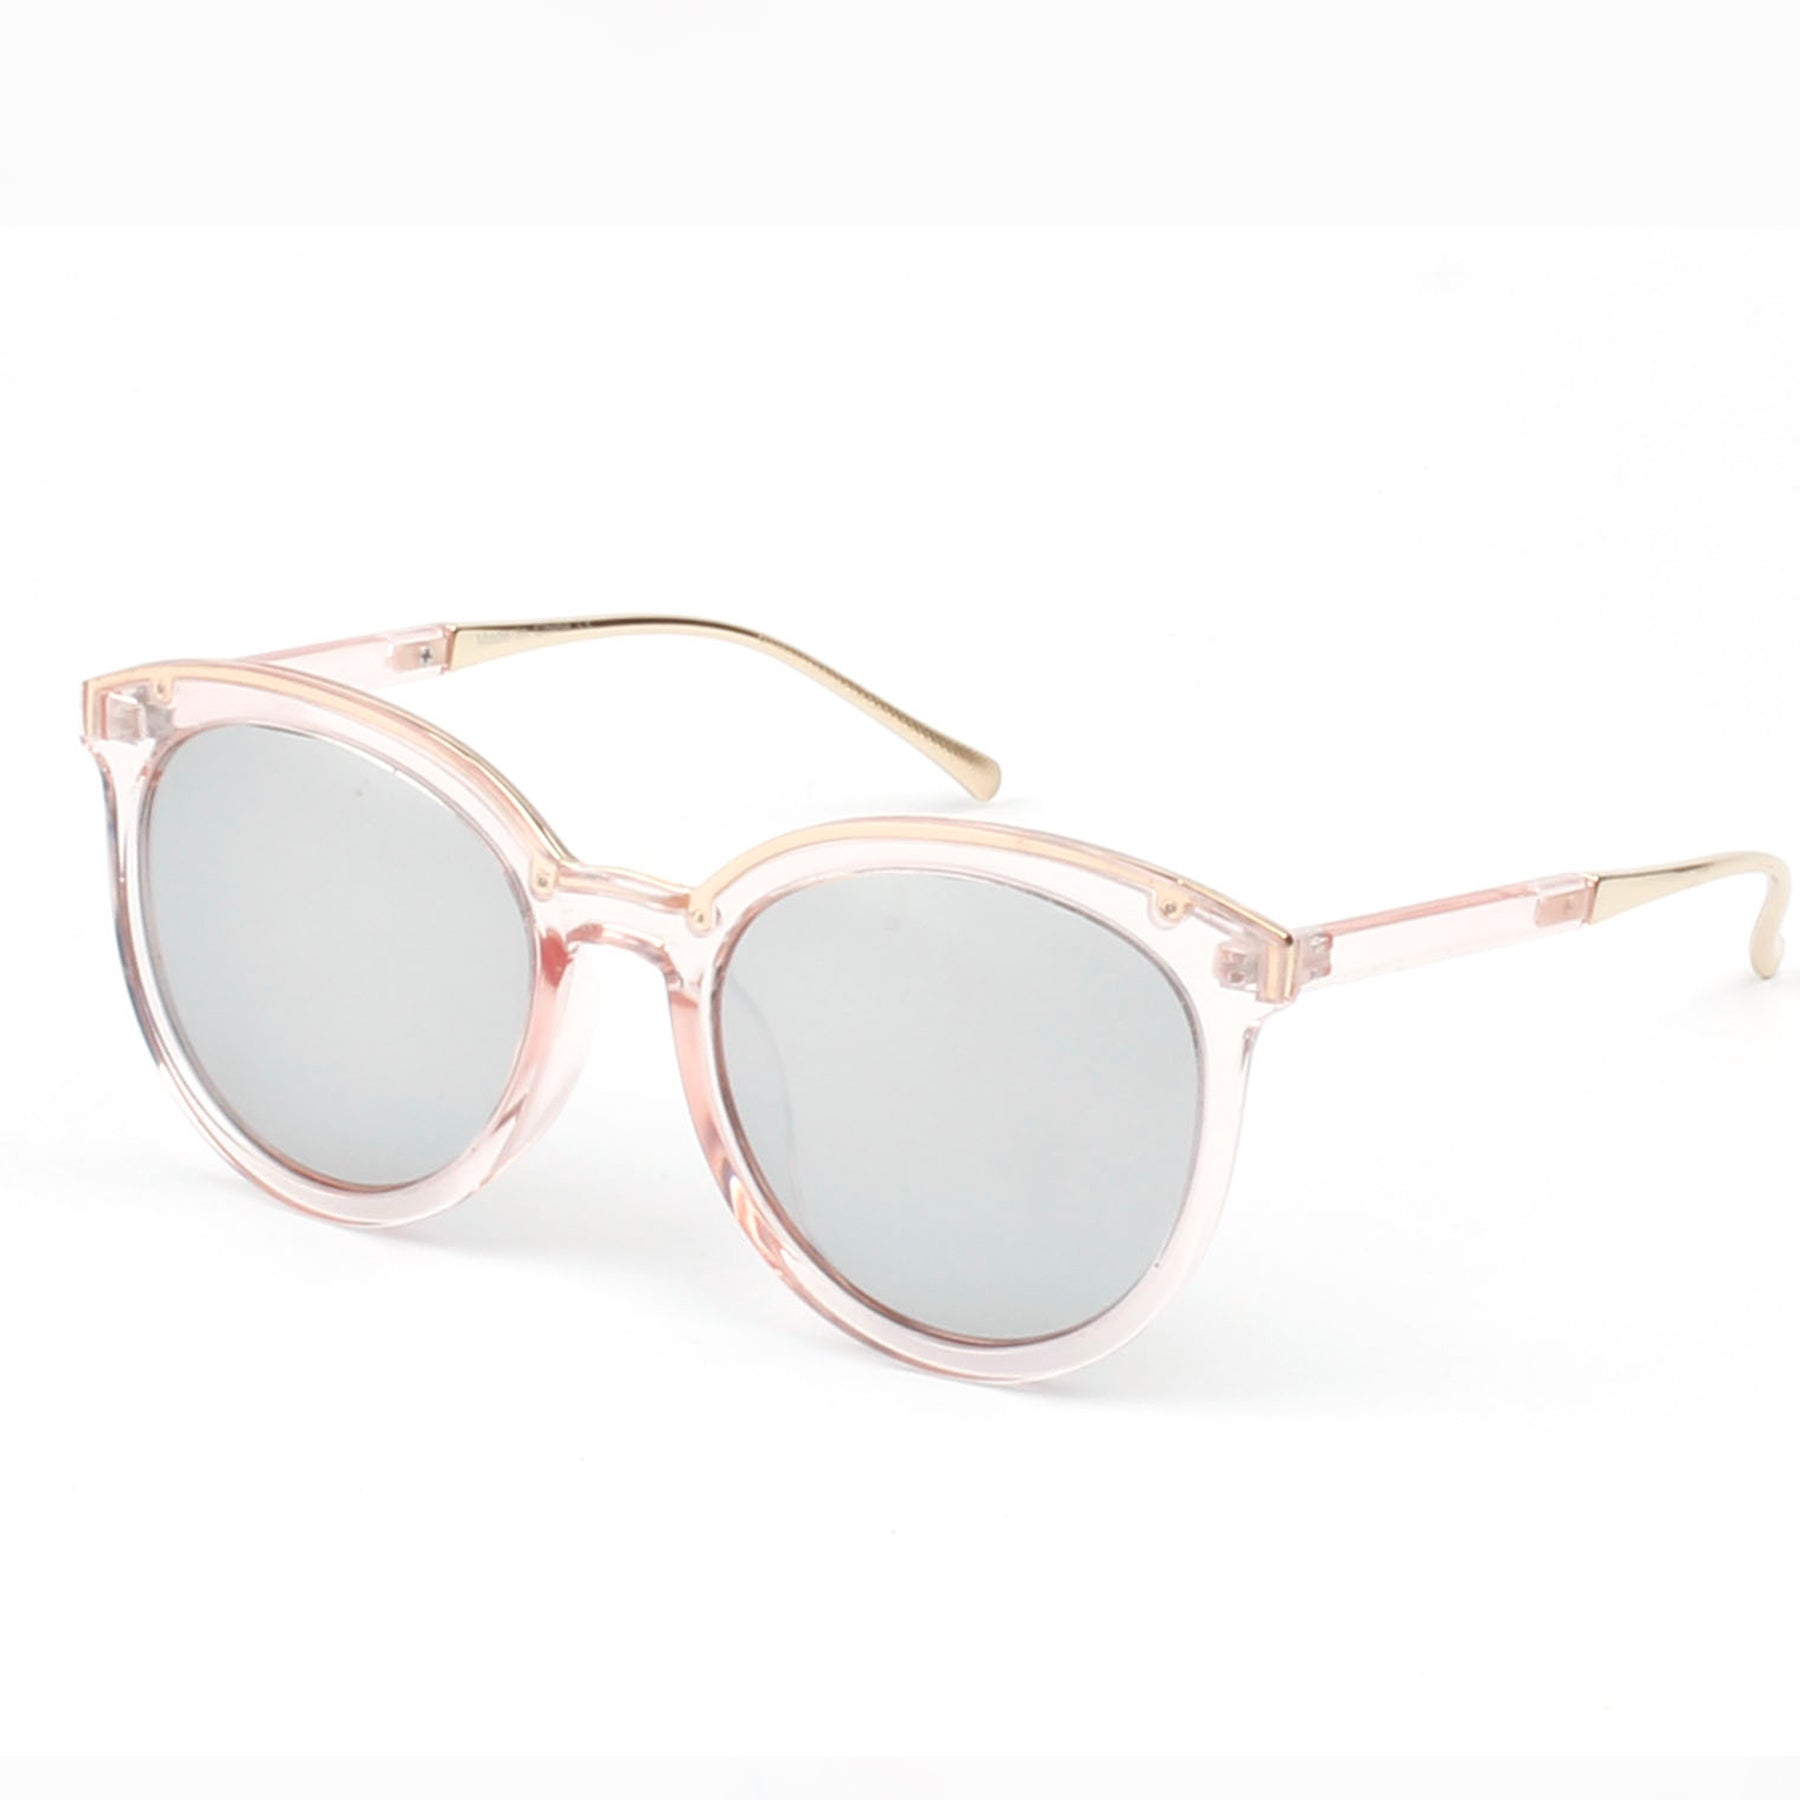 CAIRNS SUNGLASS IN PINK WITH MIRROR